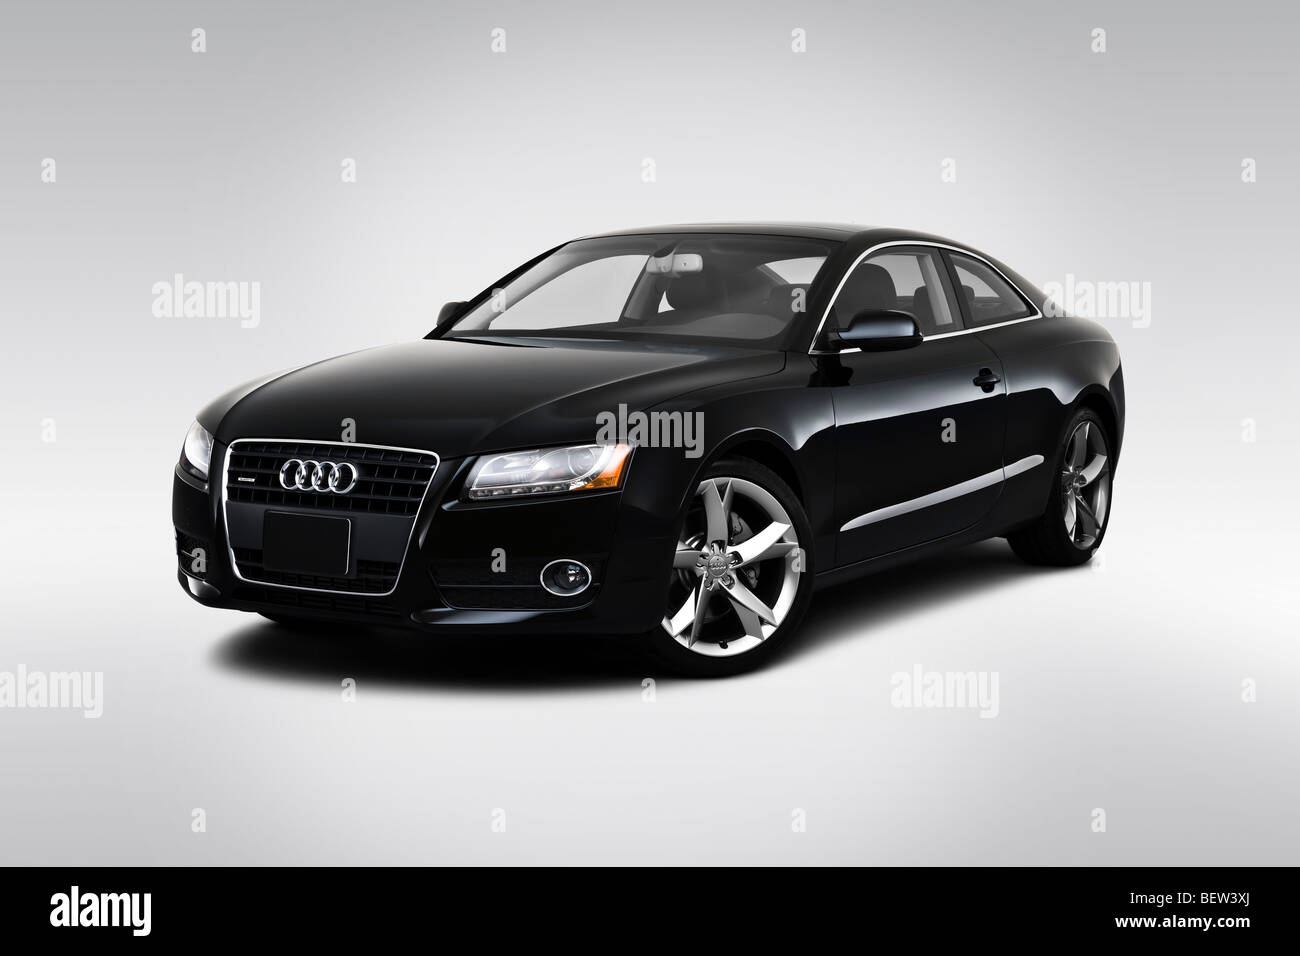 hight resolution of 2010 audi a5 2 0t in black front angle view